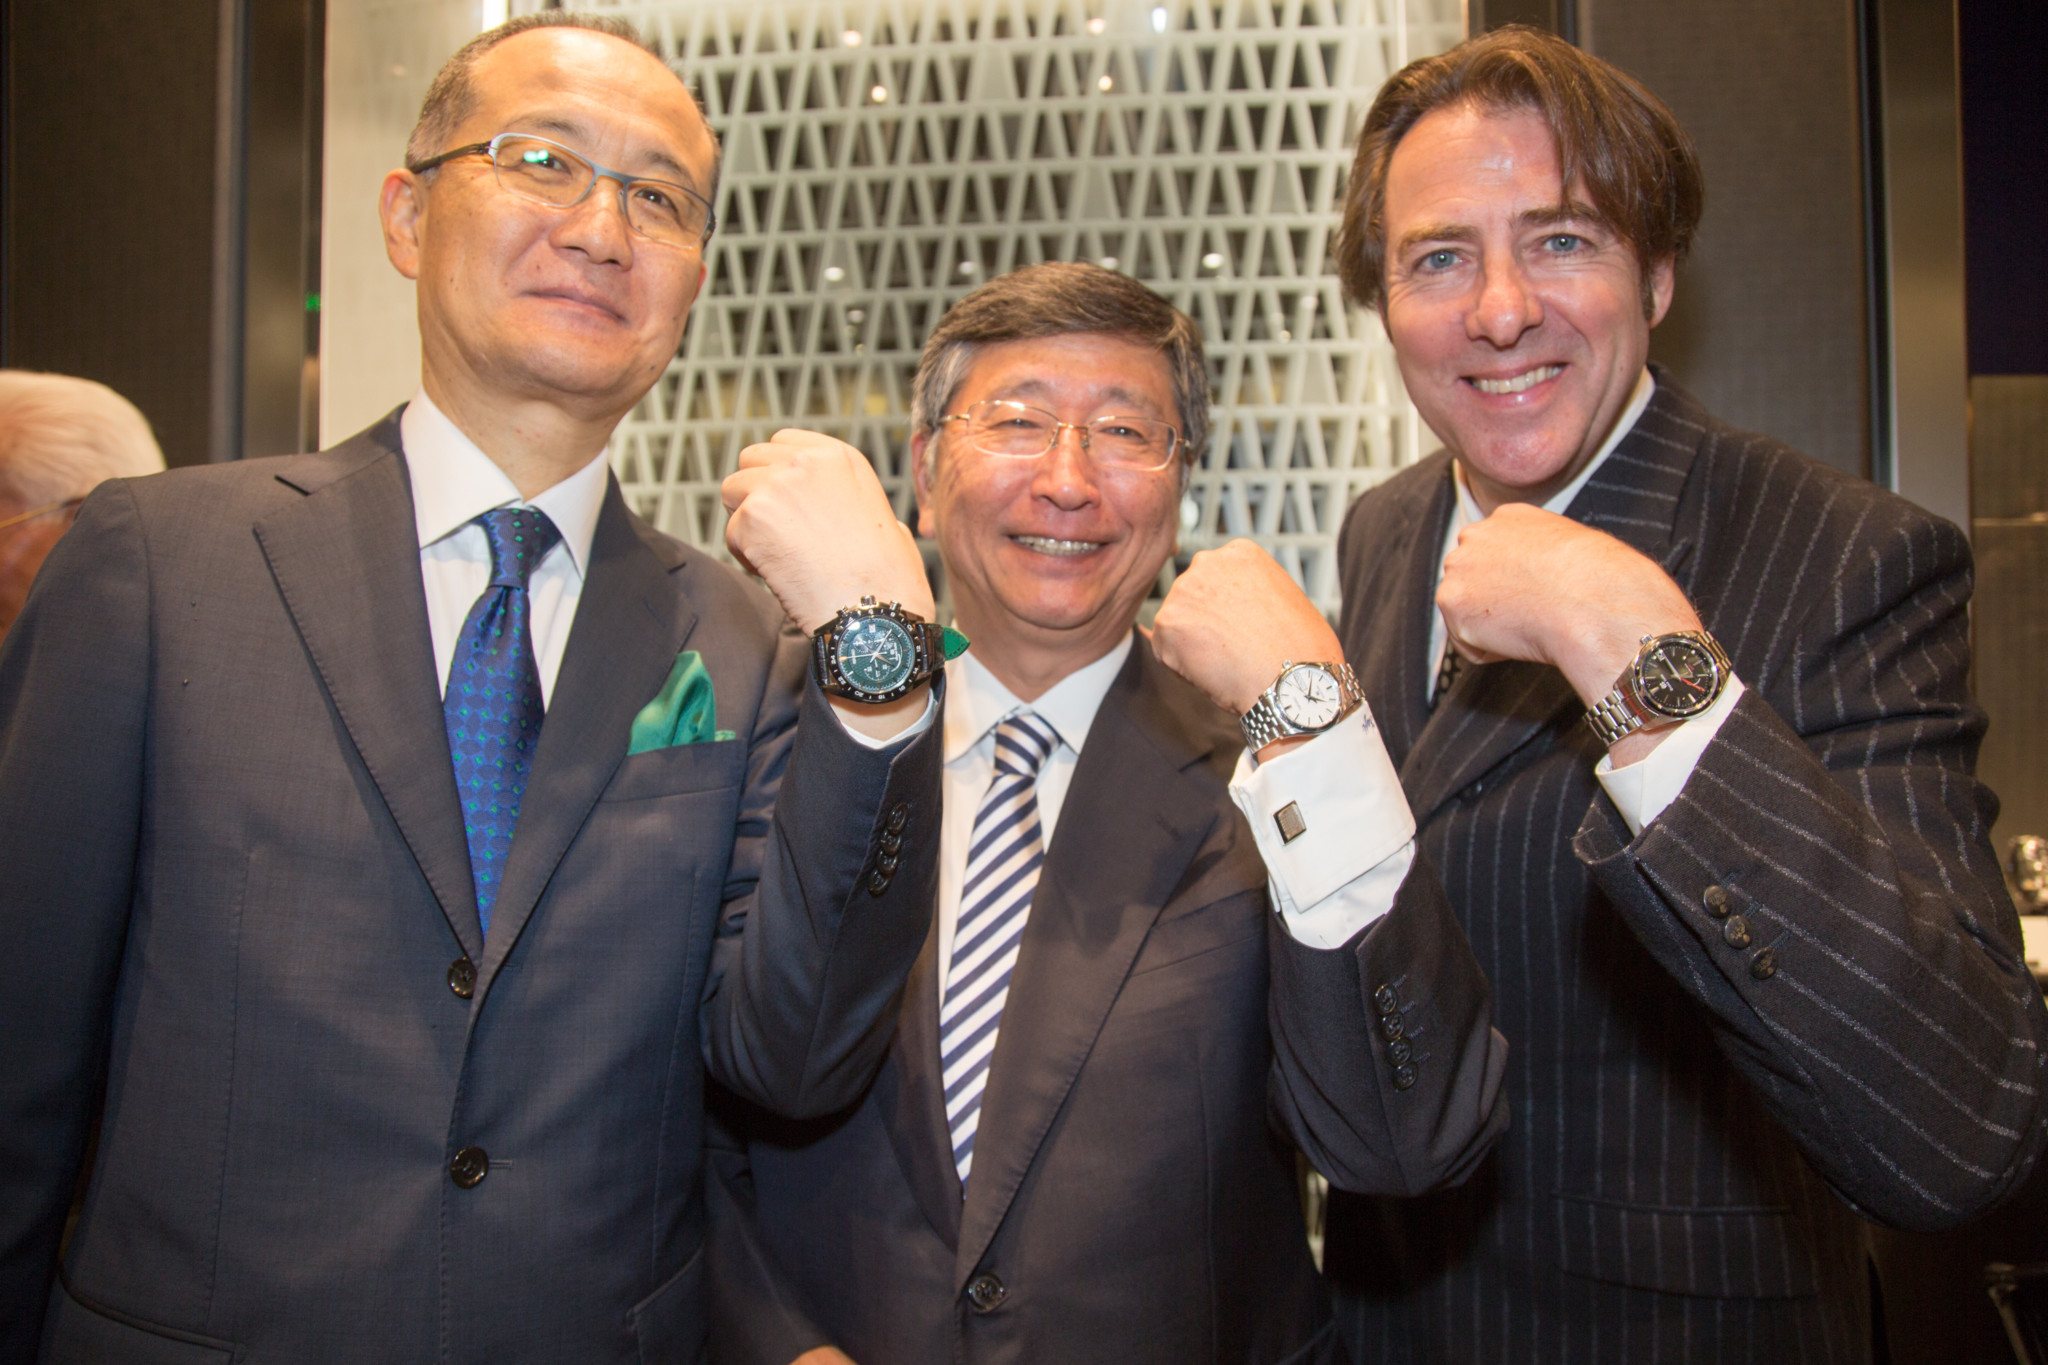 """Seiko's president and chief operating officer was joined by Japan's ambassador to the UK for the official opening of its flagship store in London last month. Shuji Takahashi welcomed ambassador Koji Tsuruoka to the Knightsbridge store, along with invited guests and media. Instead of the usual ribbon-cutting, the store was officially opened when a ceremonial barrel of saki was broken open. TV celebrity Jonathan Ross — who is a passionate student of Japanese culture — helped with the honours. Seiko may be best known for watches priced at under £200, but none of them are on show at the flagship, which has Harrods, Harvey Nichols, Watches of Switzerland and the One Hyde Park Rolex boutique as neighbours in one of London's most affluent shopping streets. Half the store is devoted to Grand Seiko, the top end of the Seiko family, which is a fully integrated manufacture that makes everything from hairsprings to complete movements and cases. The remainder of the boutique displays high end Seiko elite models from Astron, Presage and Prestige collections, the majority of which carry four-figure price tags. The store even displays Credor watches, the highest horological watch brand in the Seiko family. Mr Takahashi said that the store is more than just a point of sale for London, it is a """"global flagship"""" designed to raise the profile of Seiko in the UK and for visitors from around the world. He added that Seiko's retail partners will benefit from the opening of the flagship because it will raise the prestige of the Seiko brand in the country. """"Every city where we we have opened our own boutique has seen retailers benefit from the increased profile it brings,"""" Mr Takahashi added."""